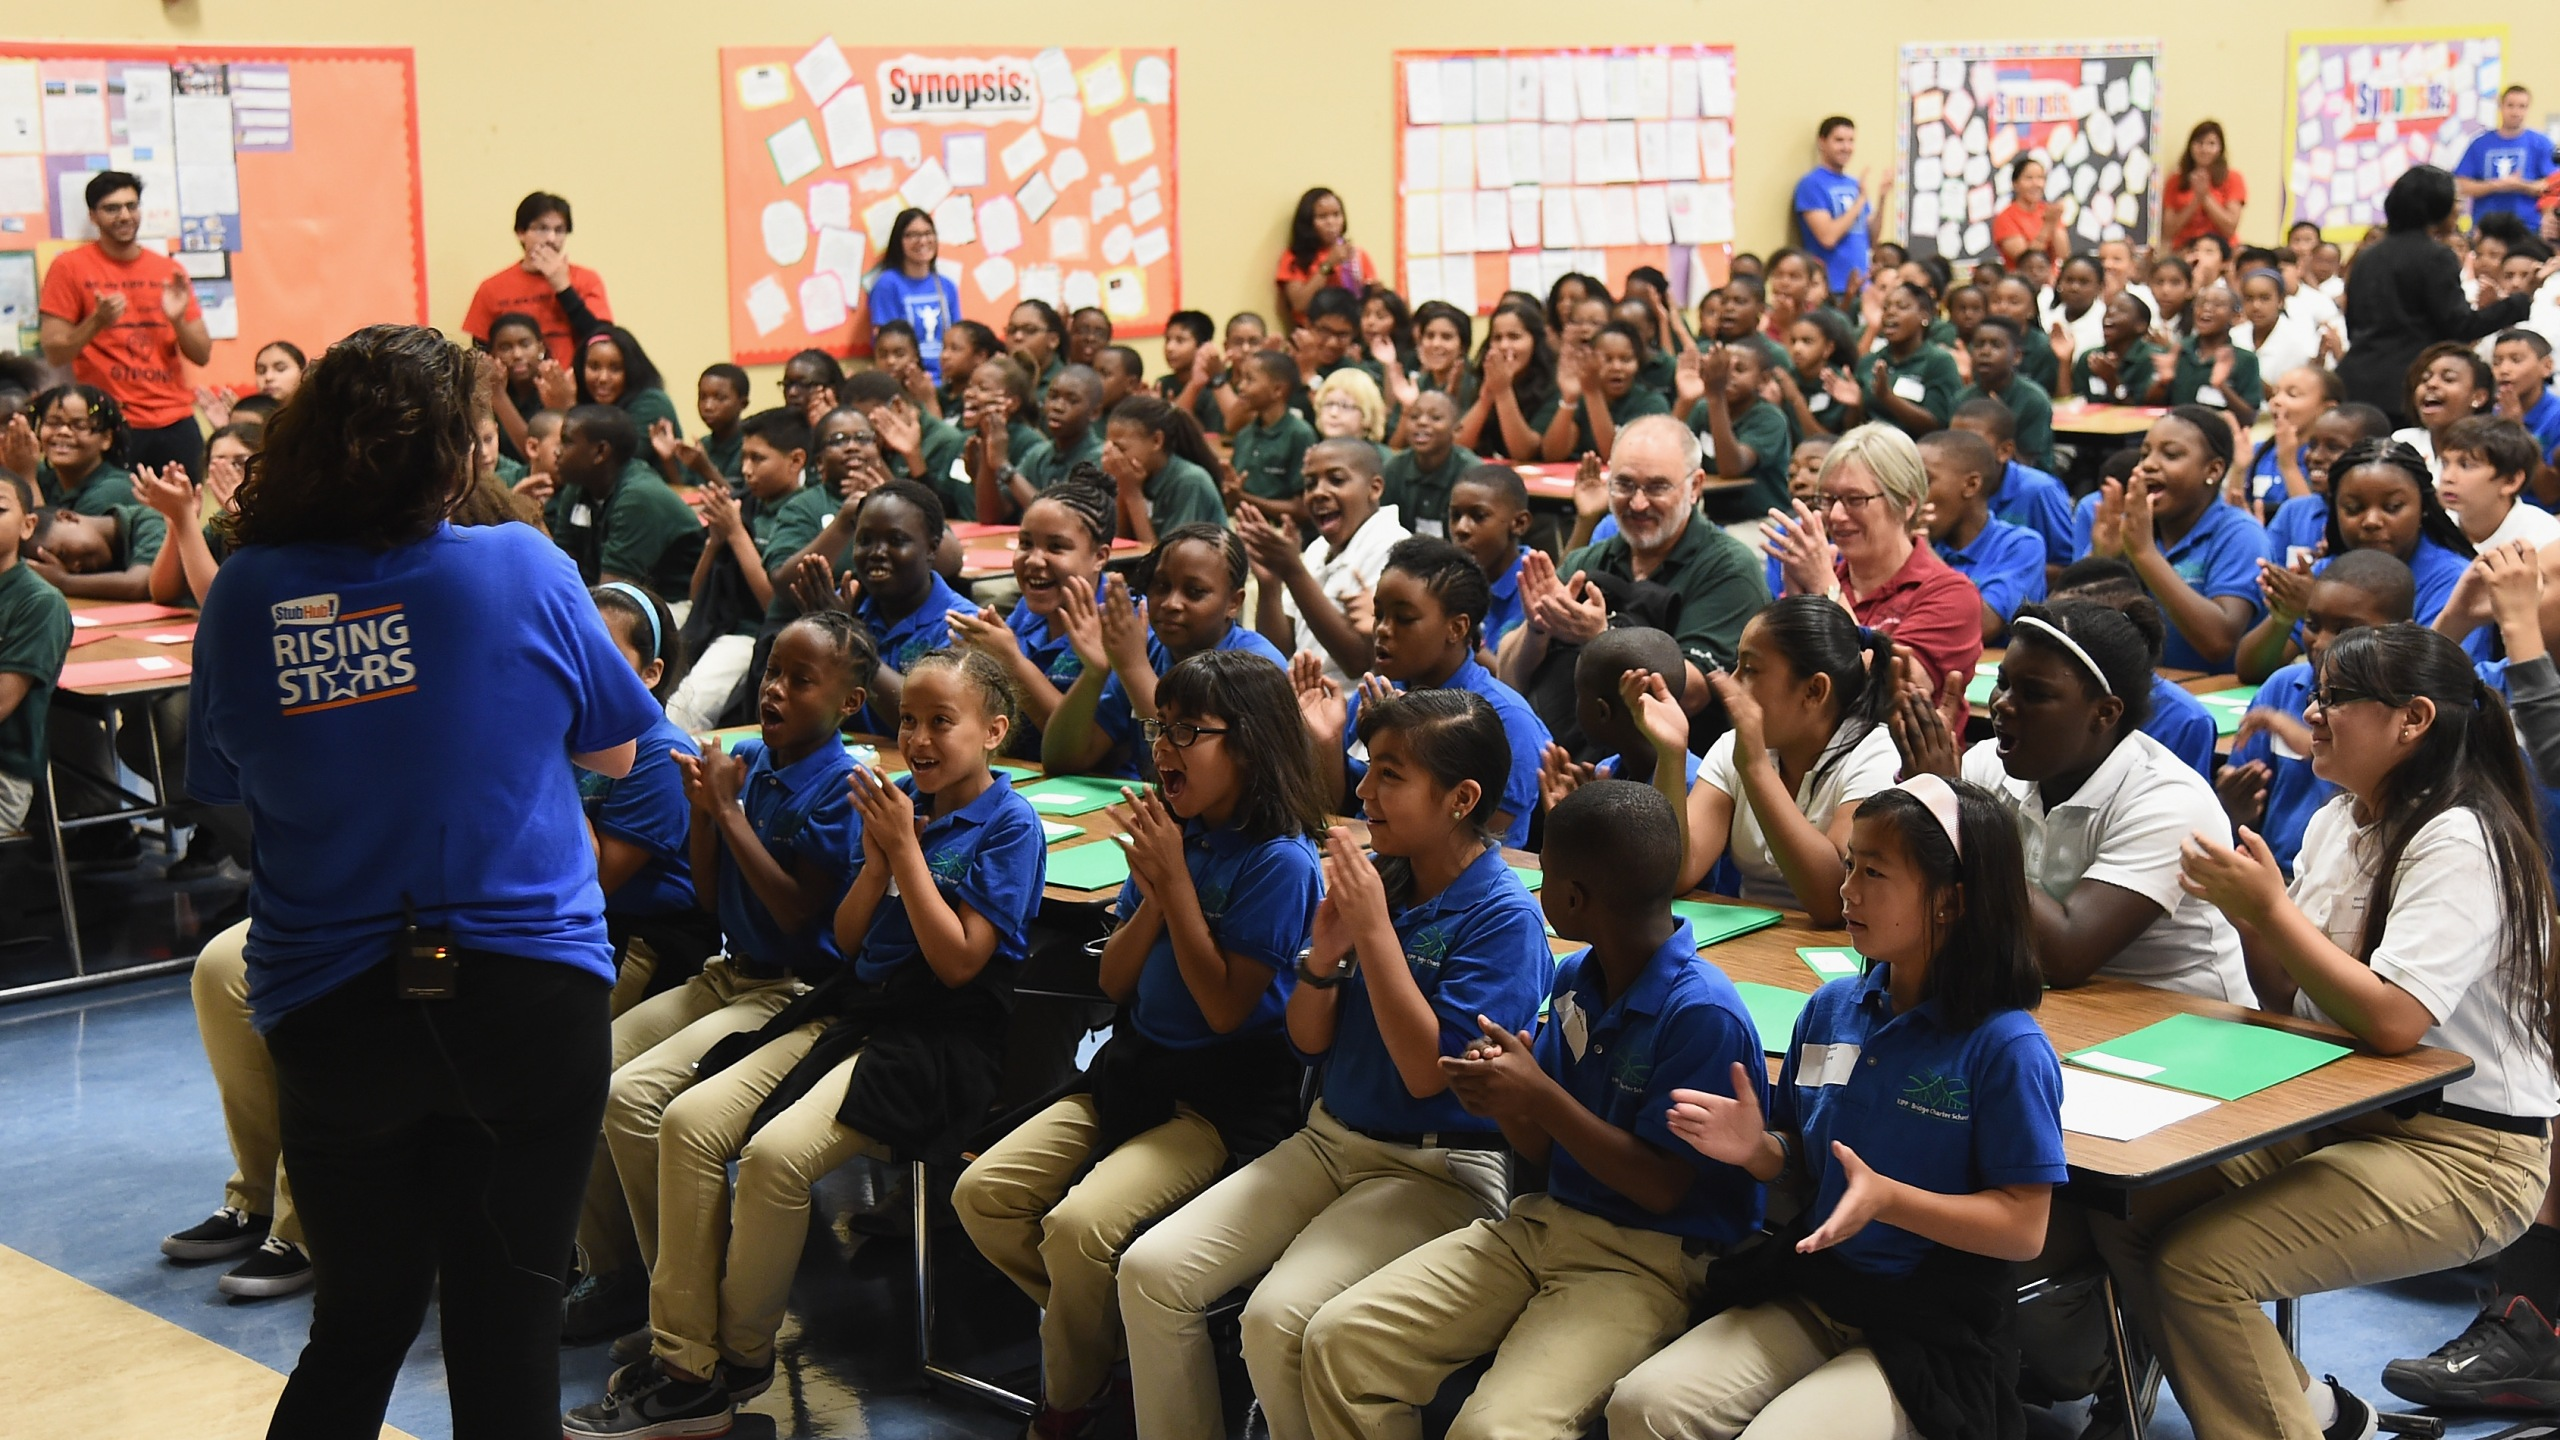 Music teacher Elizabeth Berliant talks with students as StubHub and Mr. Holland's Opus Surprise Bay Area Students with new instruments at KIPP Bridge Charter School on Aug. 12, 2014, in San Francisco. (Credit: Michael Buckner/Getty Images for StubHub)